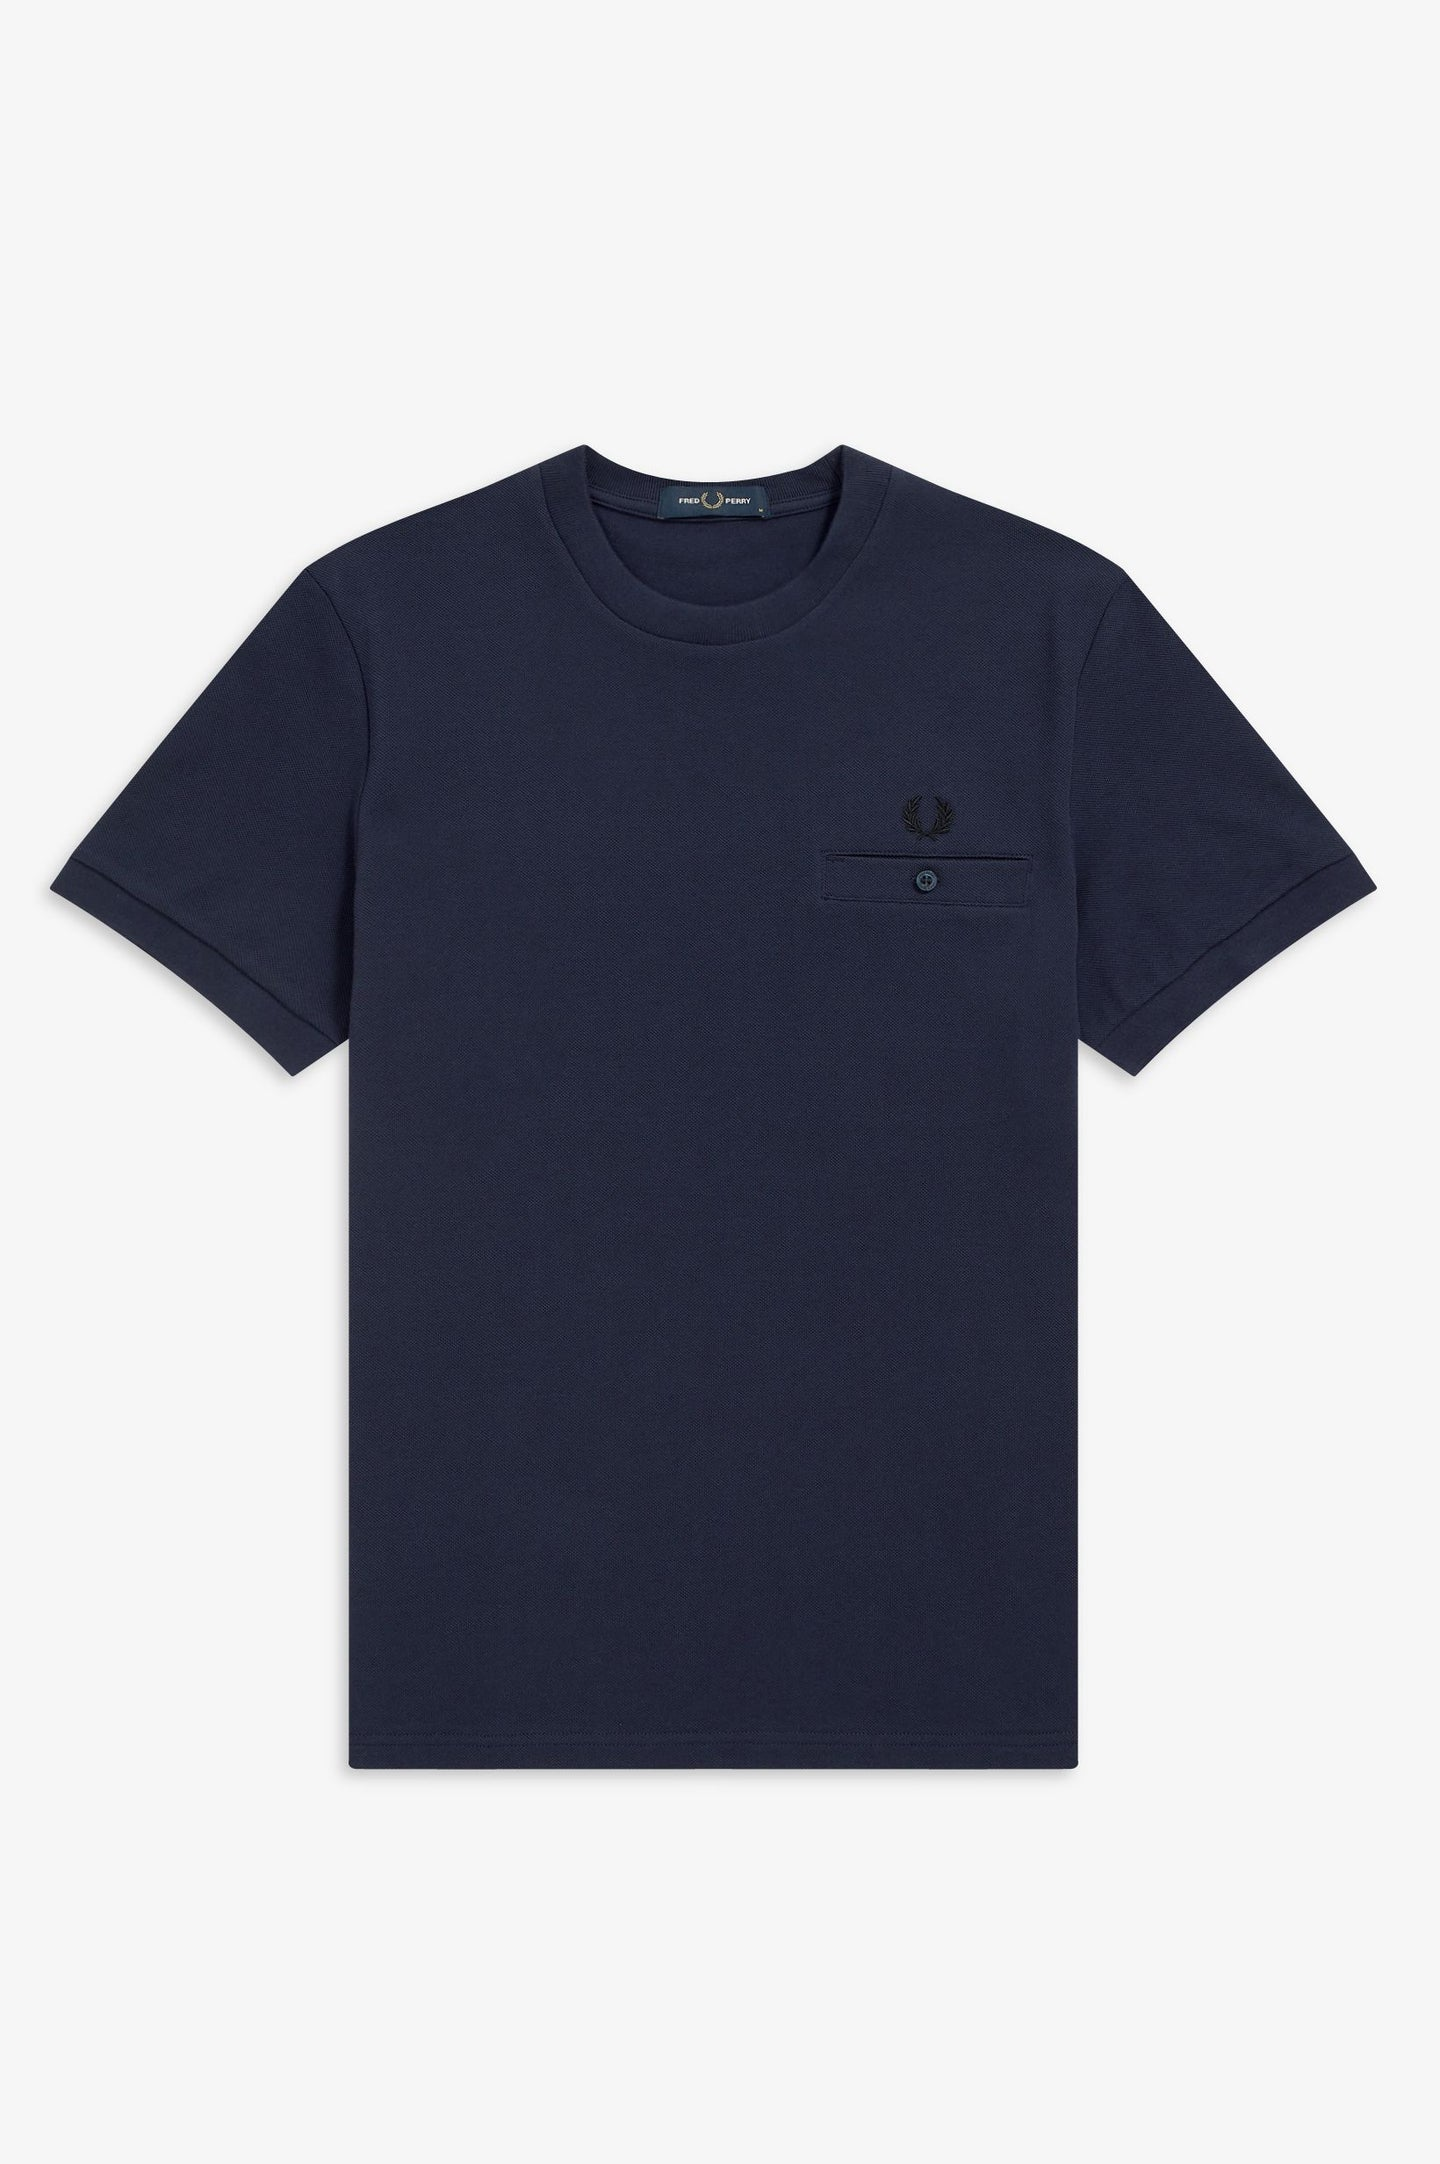 FRED PERRY - T-SHIRT - 266 CARBON BLUE